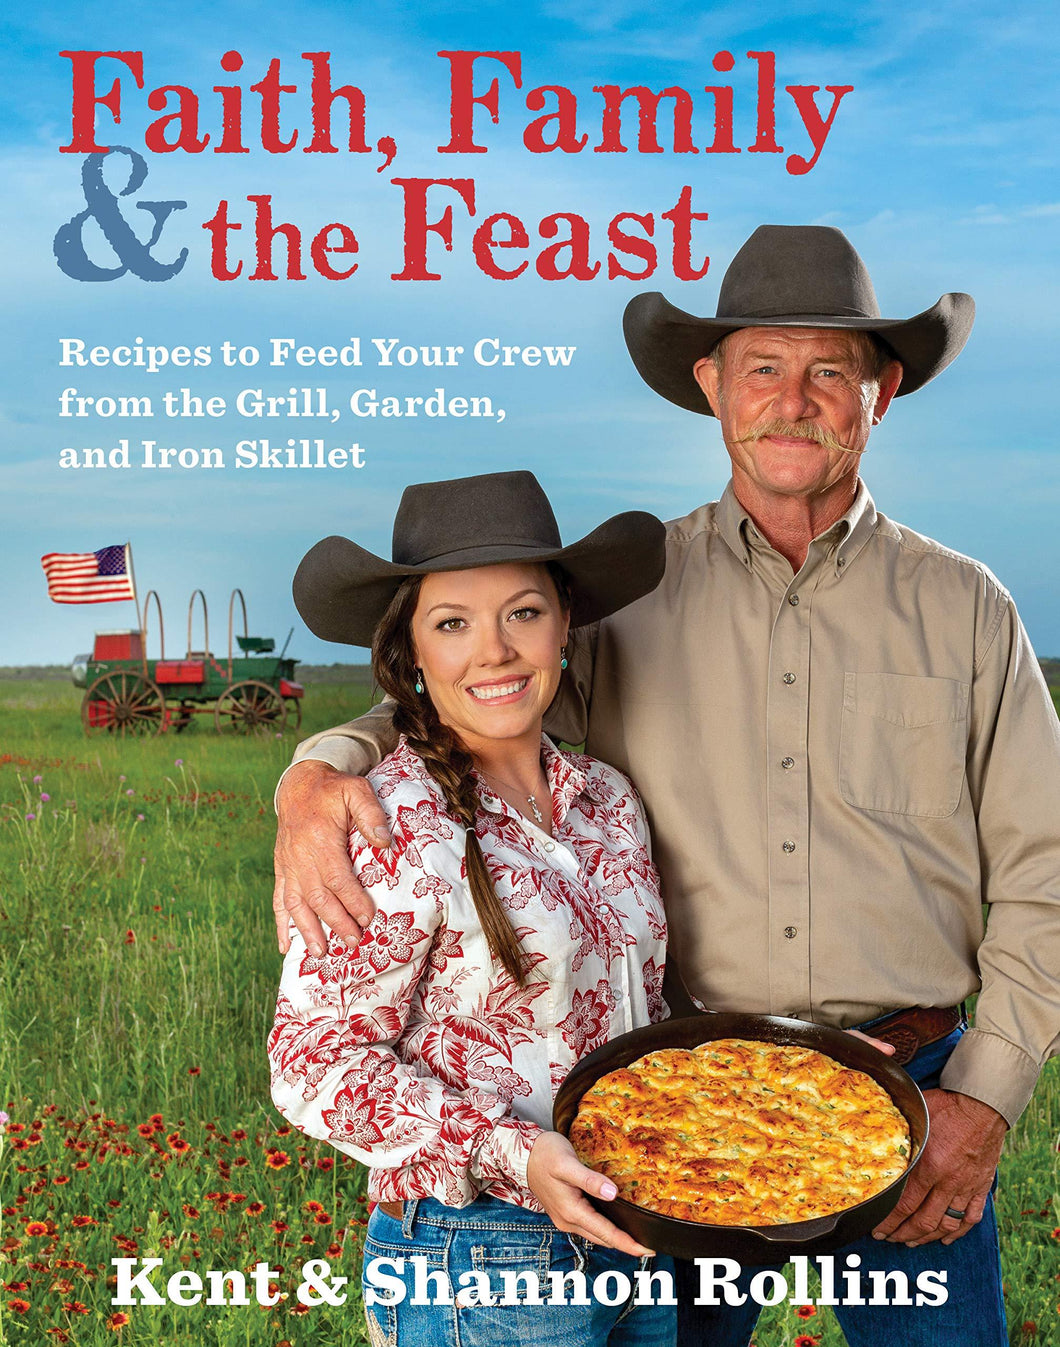 Faith, Family & the Feast: Recipes to Feed Your Crew from the Grill, Garden, and Iron Skillet - Tolerant Planet